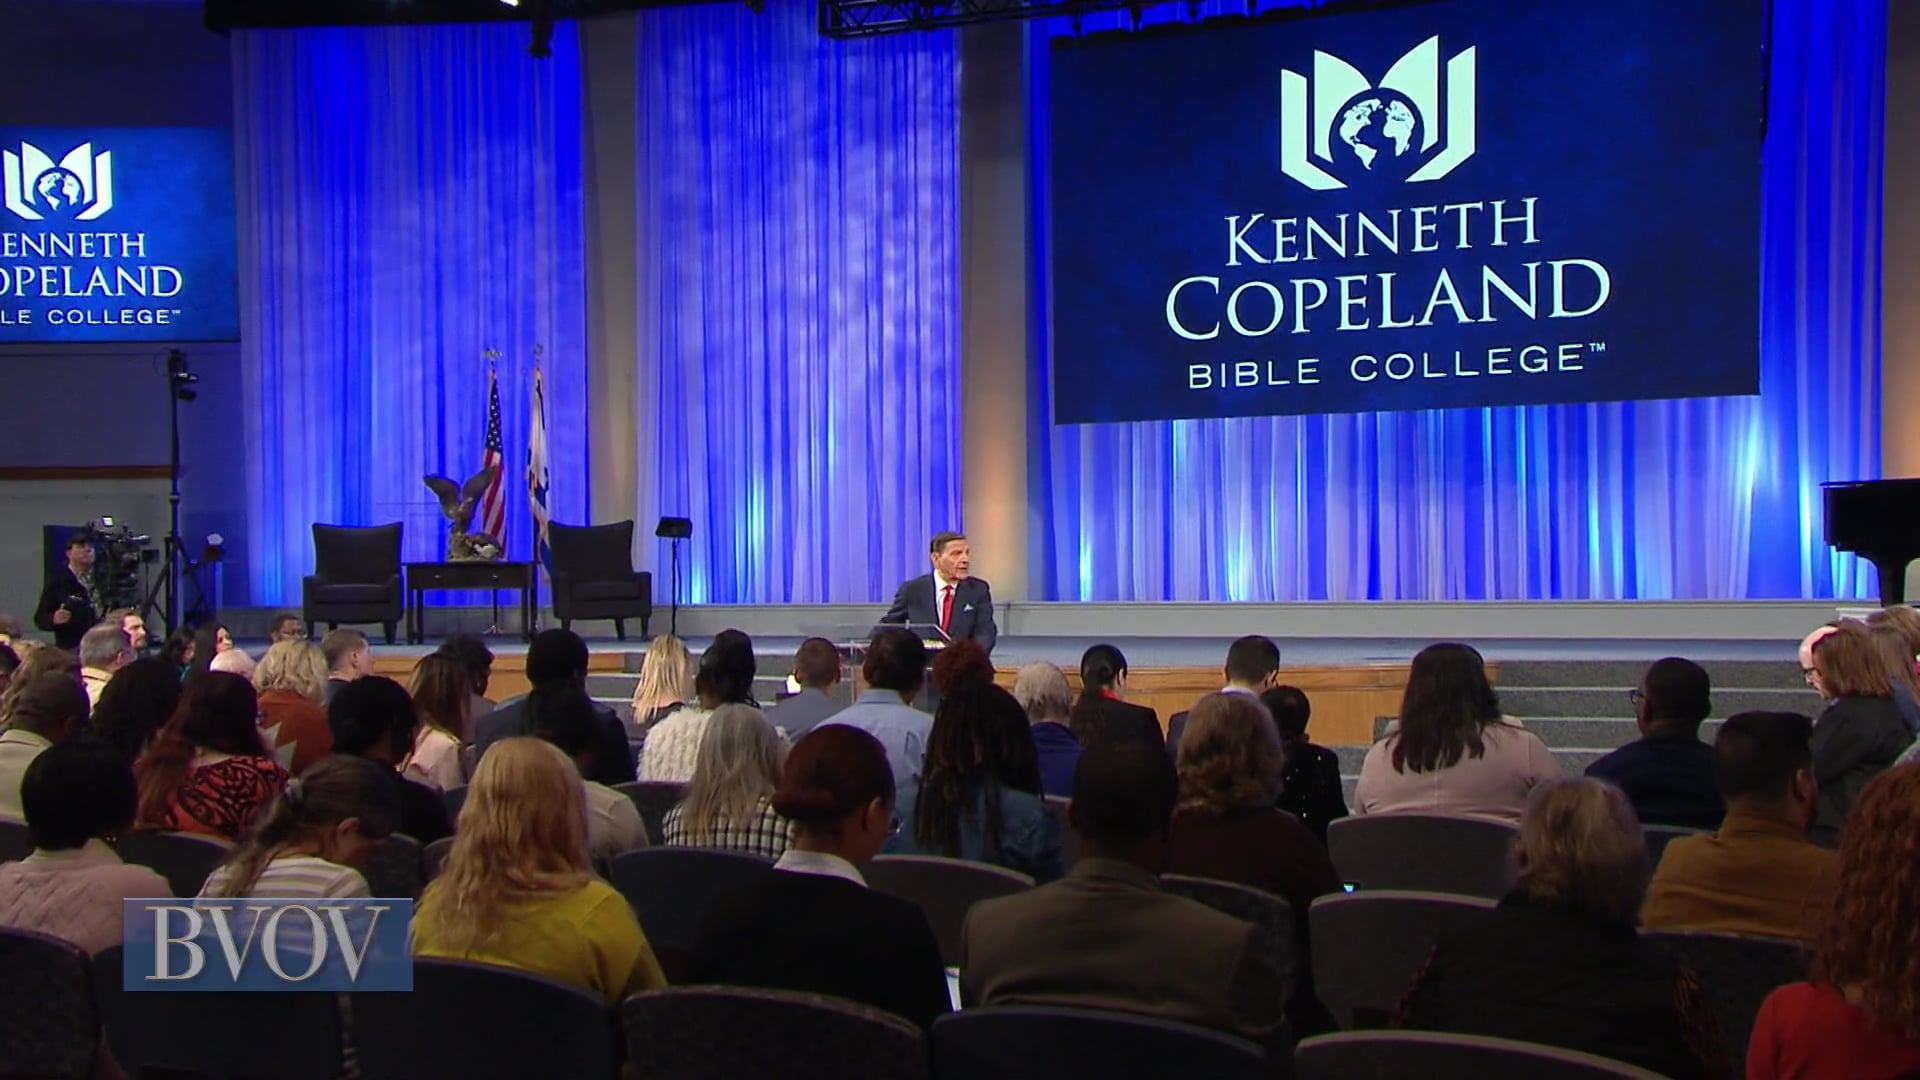 What can you do to help God? Watch Kenneth Copeland on Believer's Voice of Victory as he shares how the goodness of God empowers you to be His conduit to meet people's needs. When you focus on meeting God's needs and the needs of others, watch your needs get swallowed up!